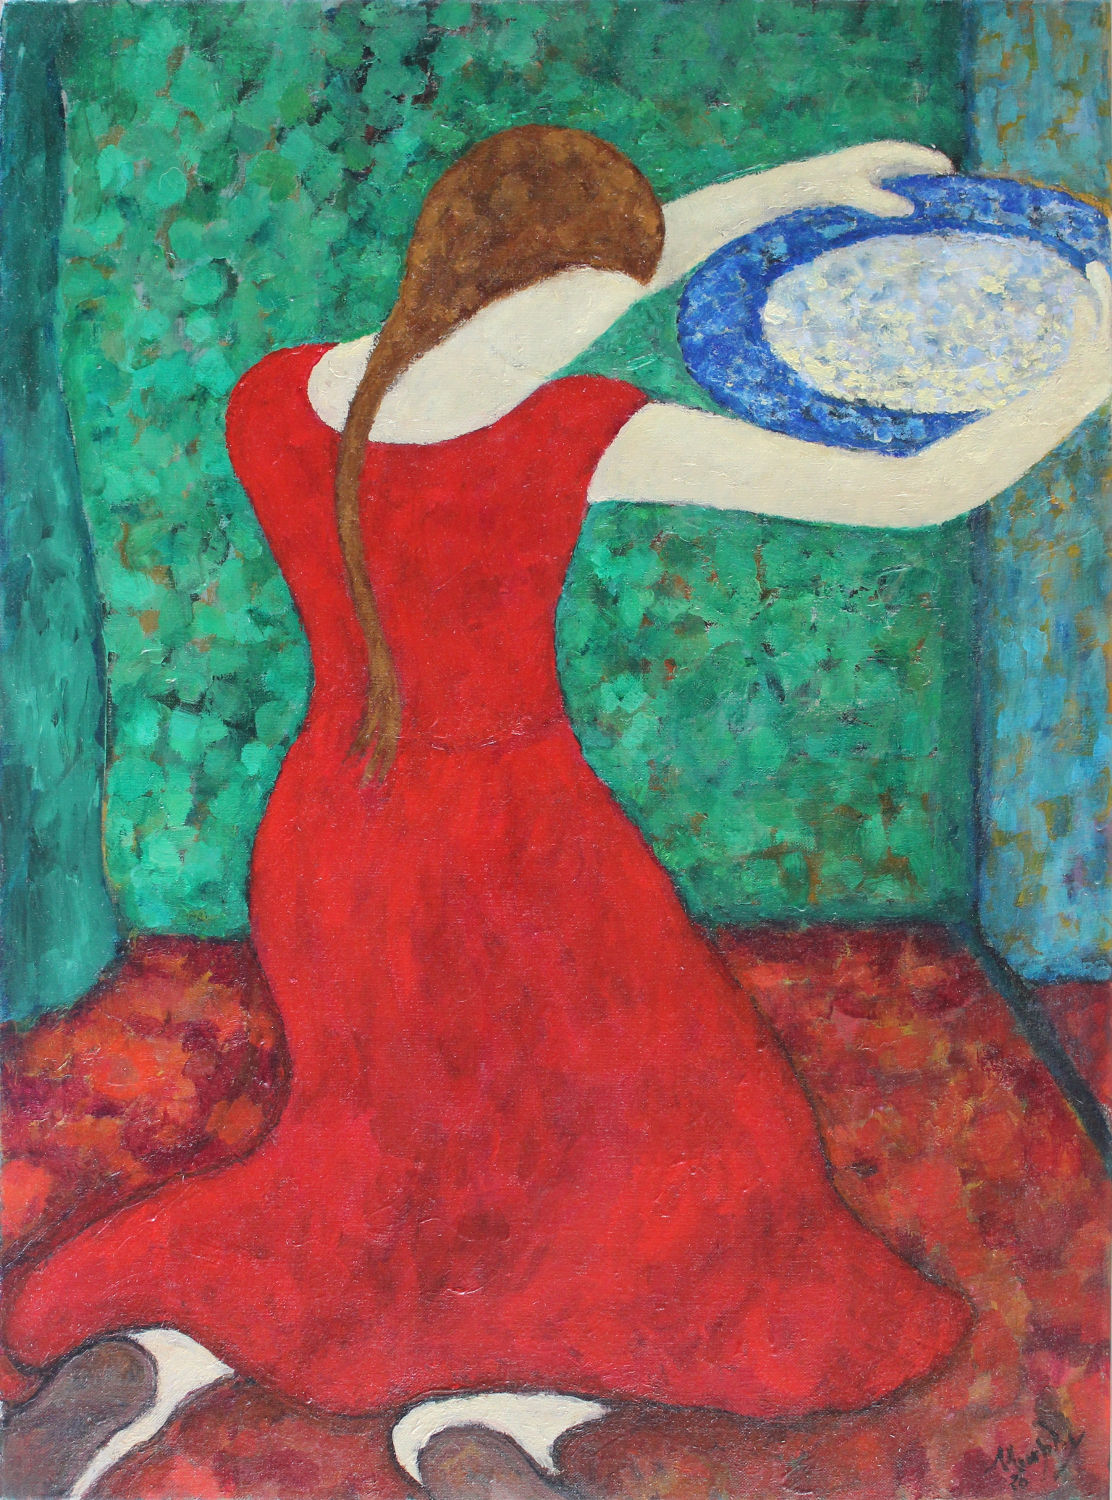 Mary-Magdalene-Adored-73-x-54-cm-oil-on-canvas-web